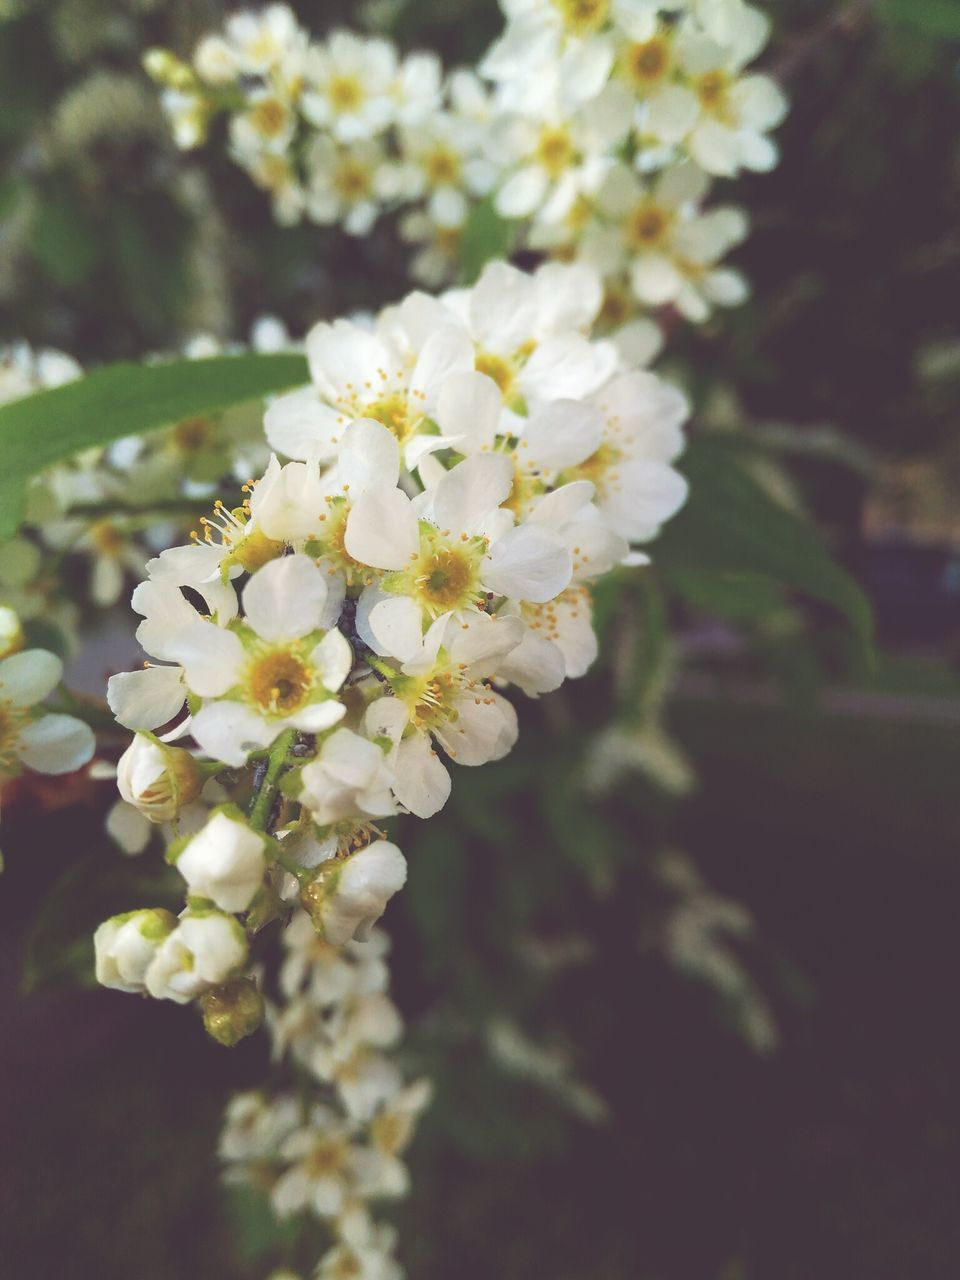 flower, fragility, blossom, white color, nature, beauty in nature, freshness, apple blossom, growth, botany, springtime, petal, tree, no people, close-up, day, outdoors, branch, blooming, flower head